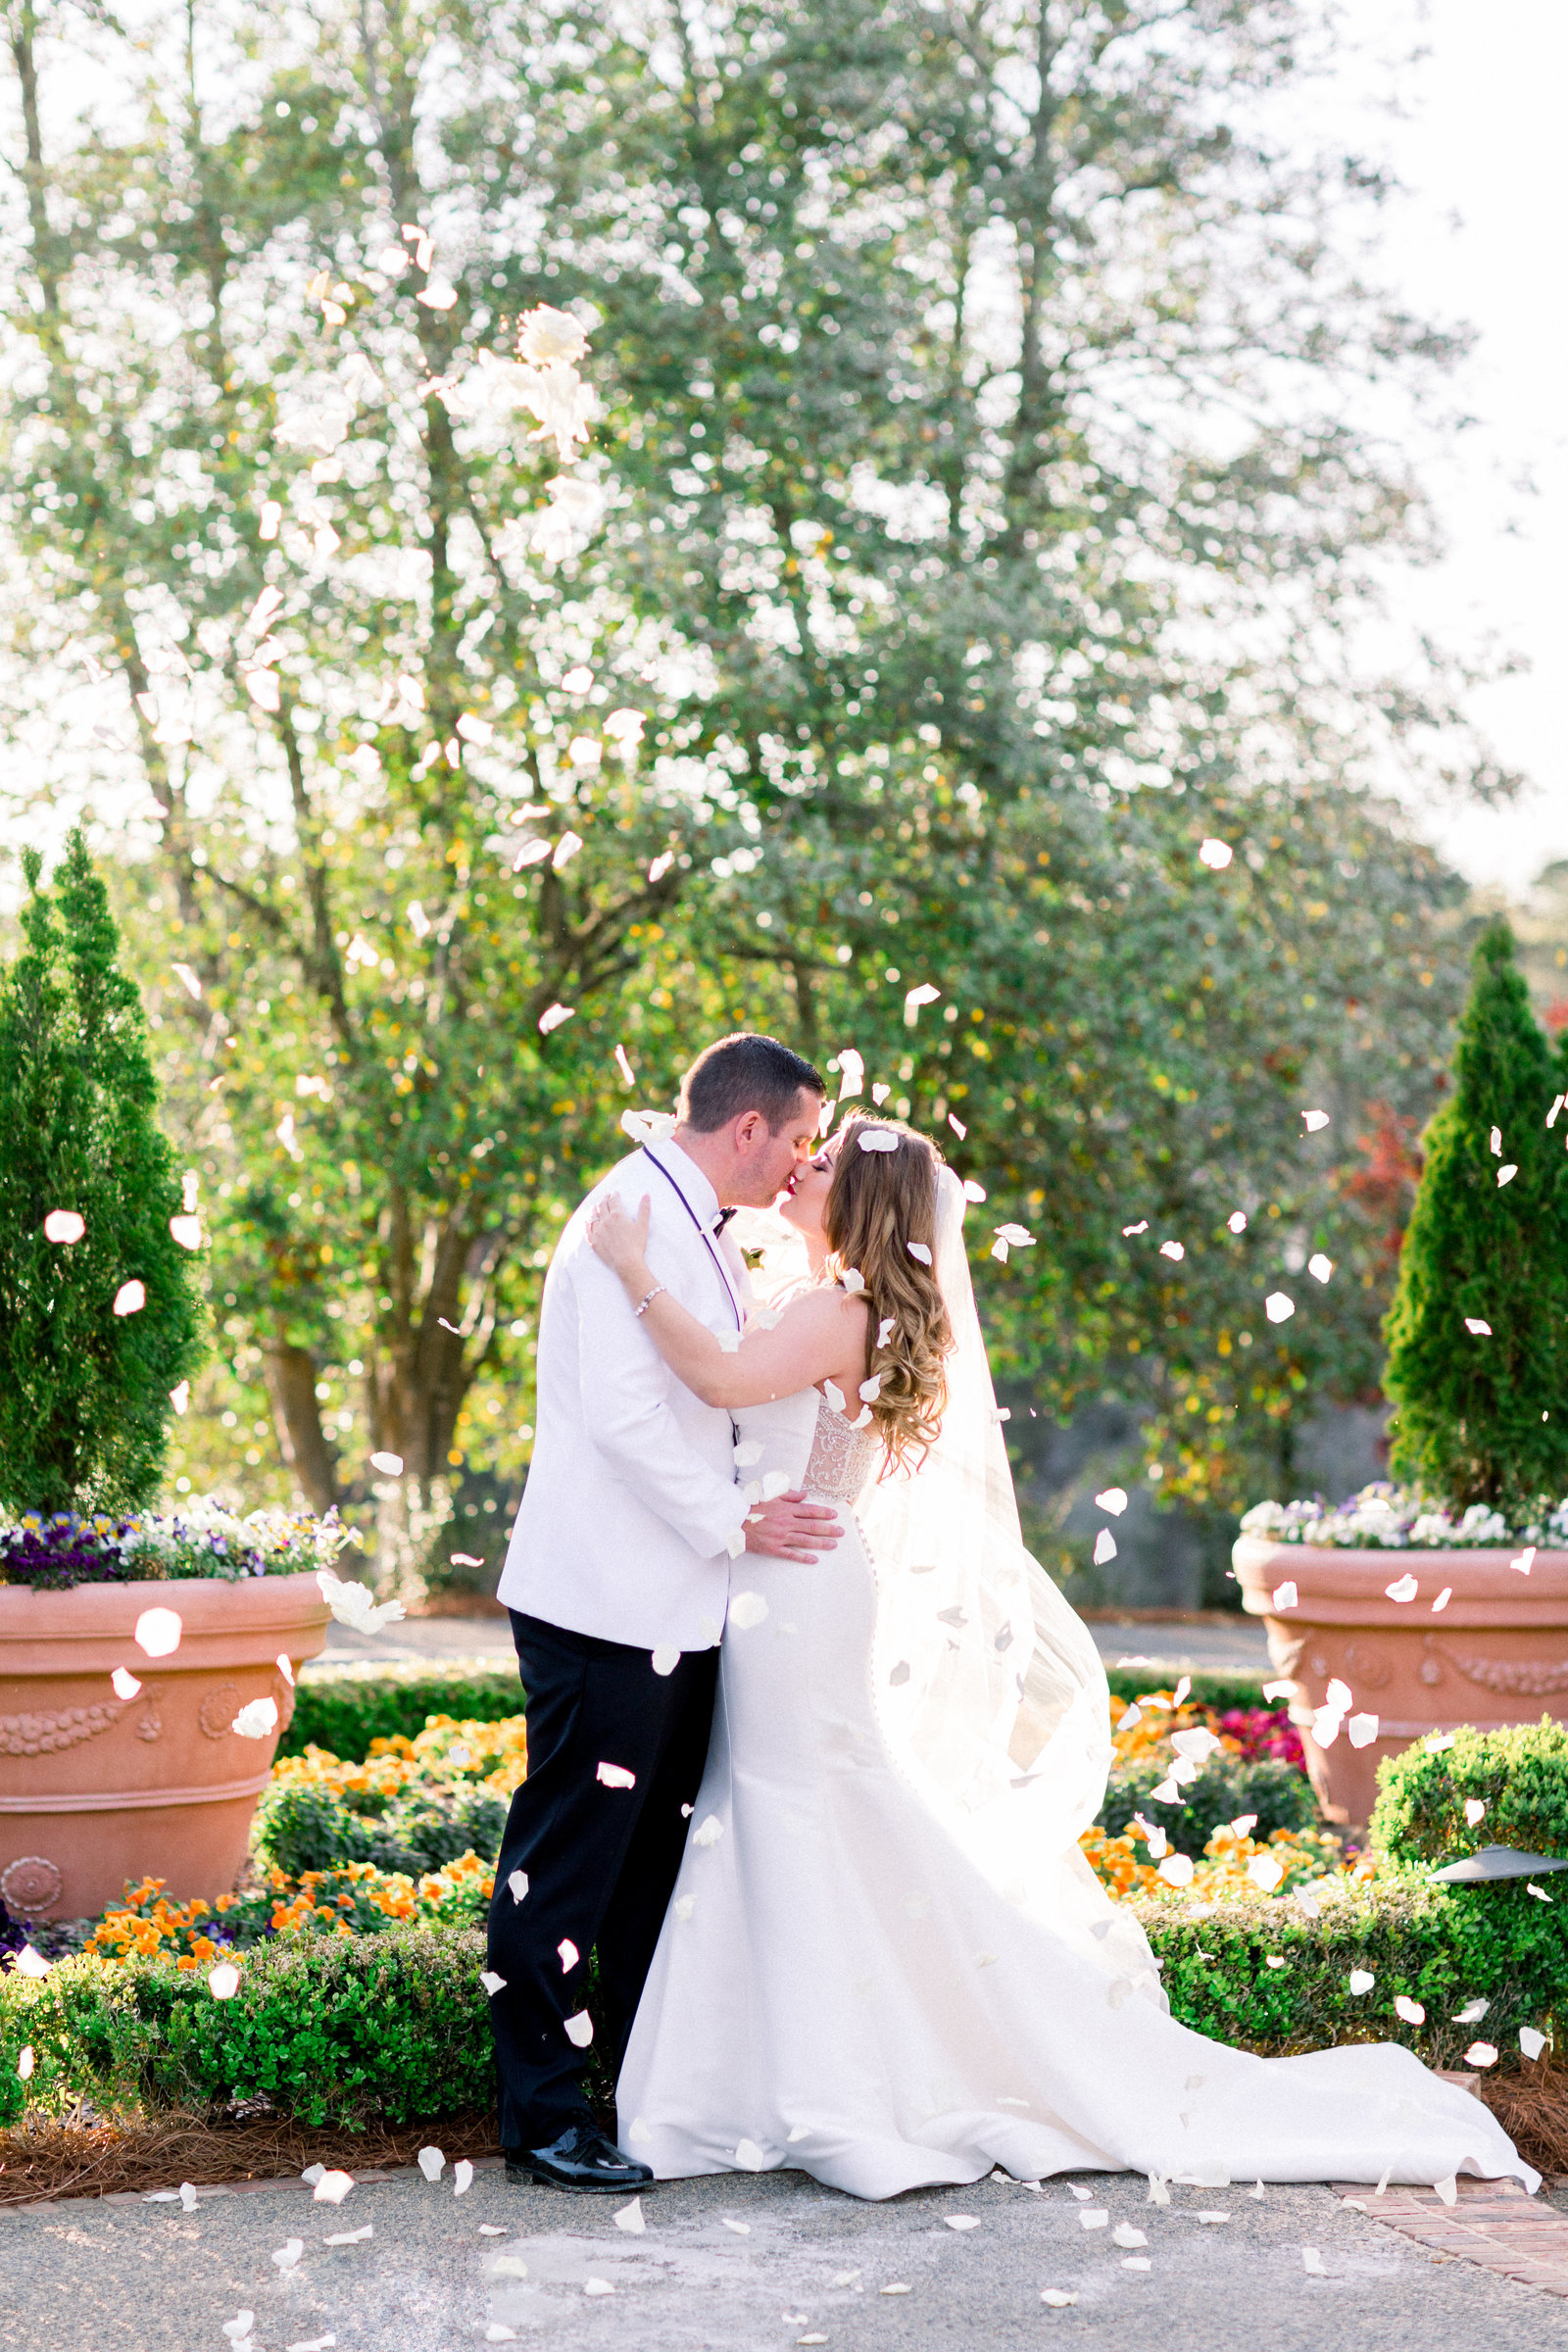 Romantic spring wedding at Country Club of the South in Atlanta, GA.